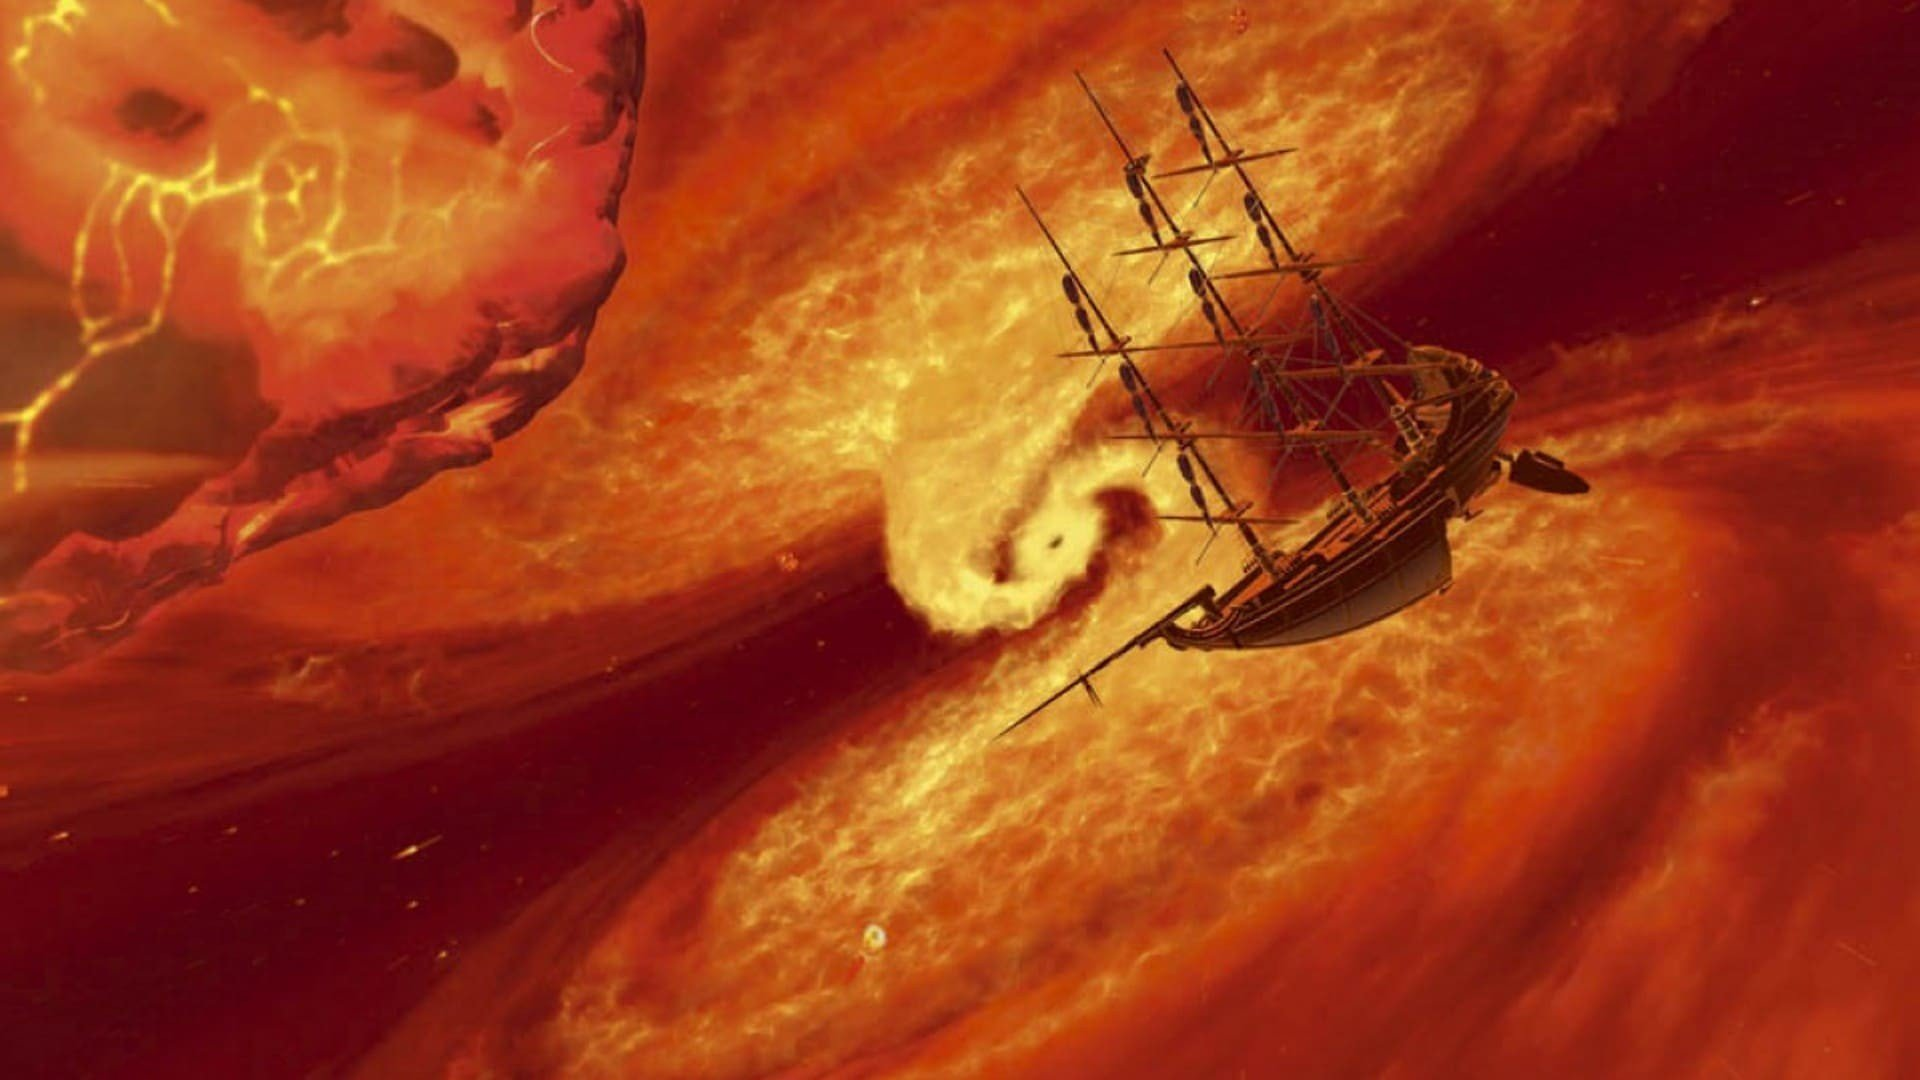 Sailing ships in space in Treasure Planet (2002) - a transliteration of Treasure Island in space that only makes for bad science-fiction